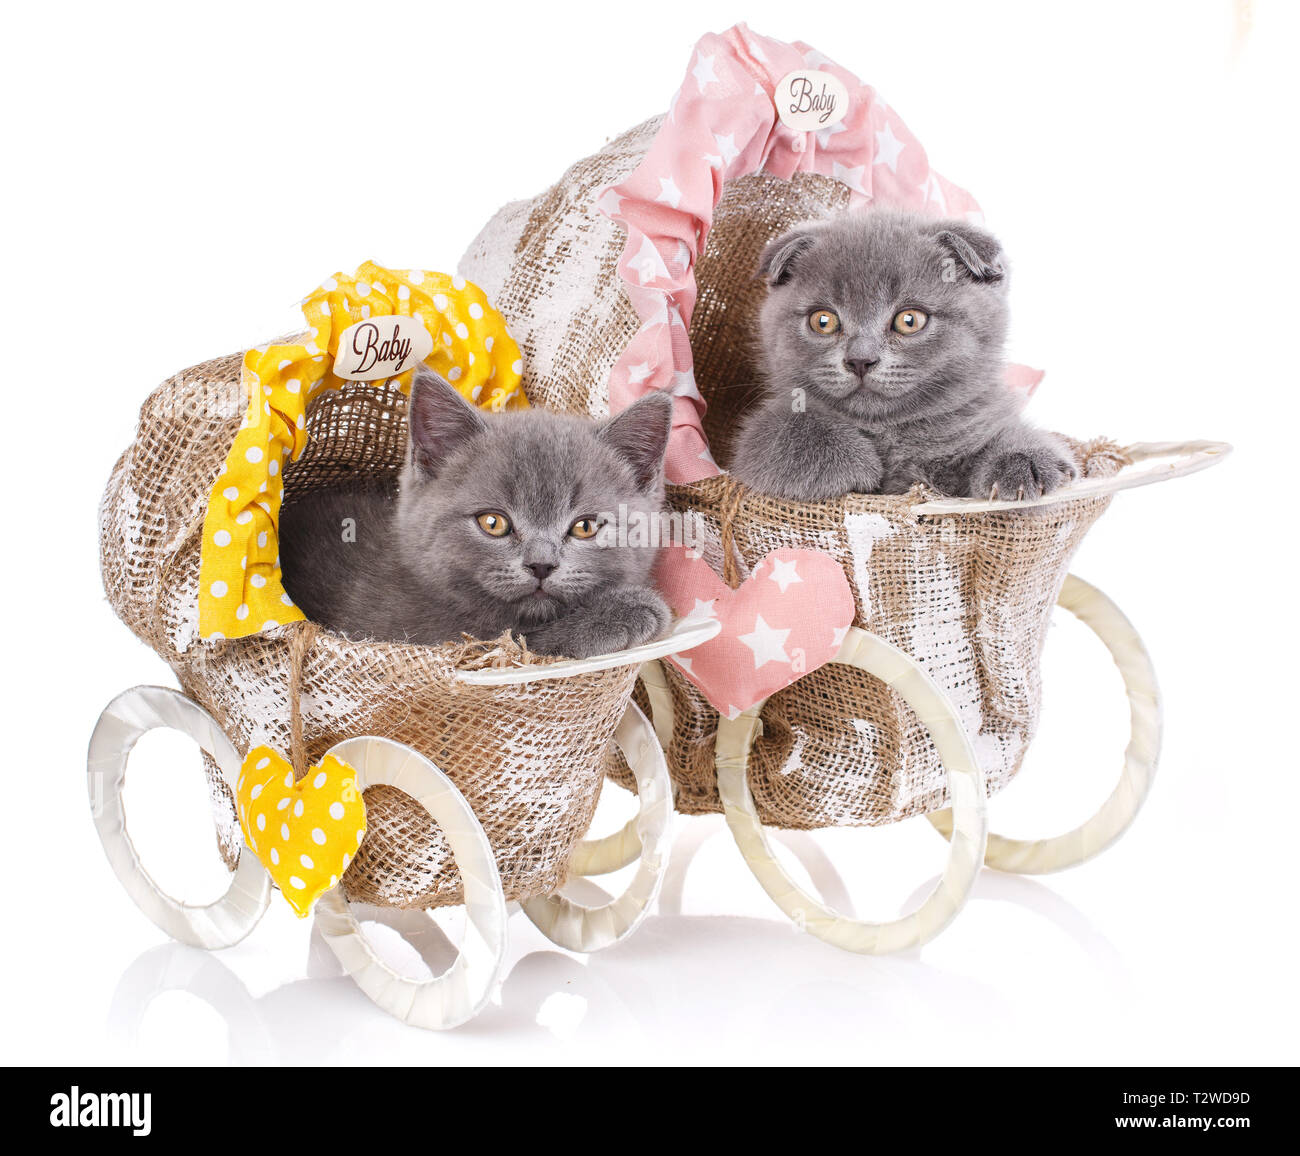 Baby Strollers Stock Photos & Baby Strollers Stock Images